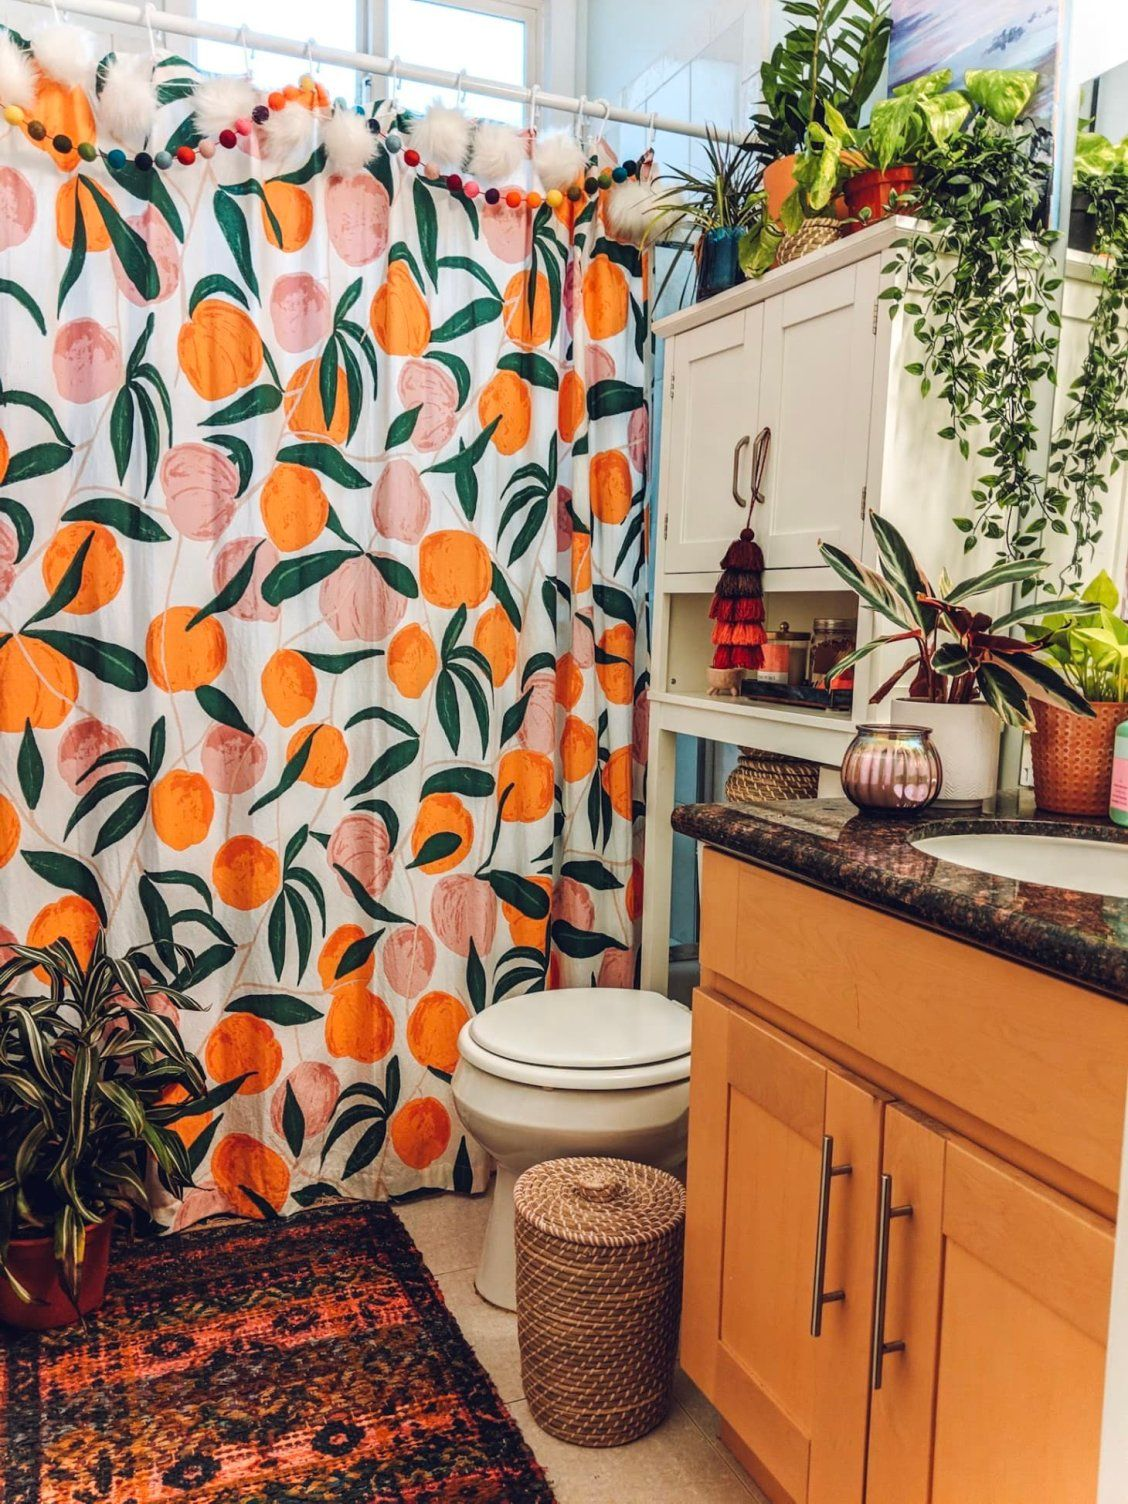 This boho bathroom shows how to add loads of color and personality to a standard rental. | House Tours by Apartment Therapy #maximalist  #bohemian, #eclectic, #colorfuldecor #bathroomideas #showercurtain #rentalbathroom